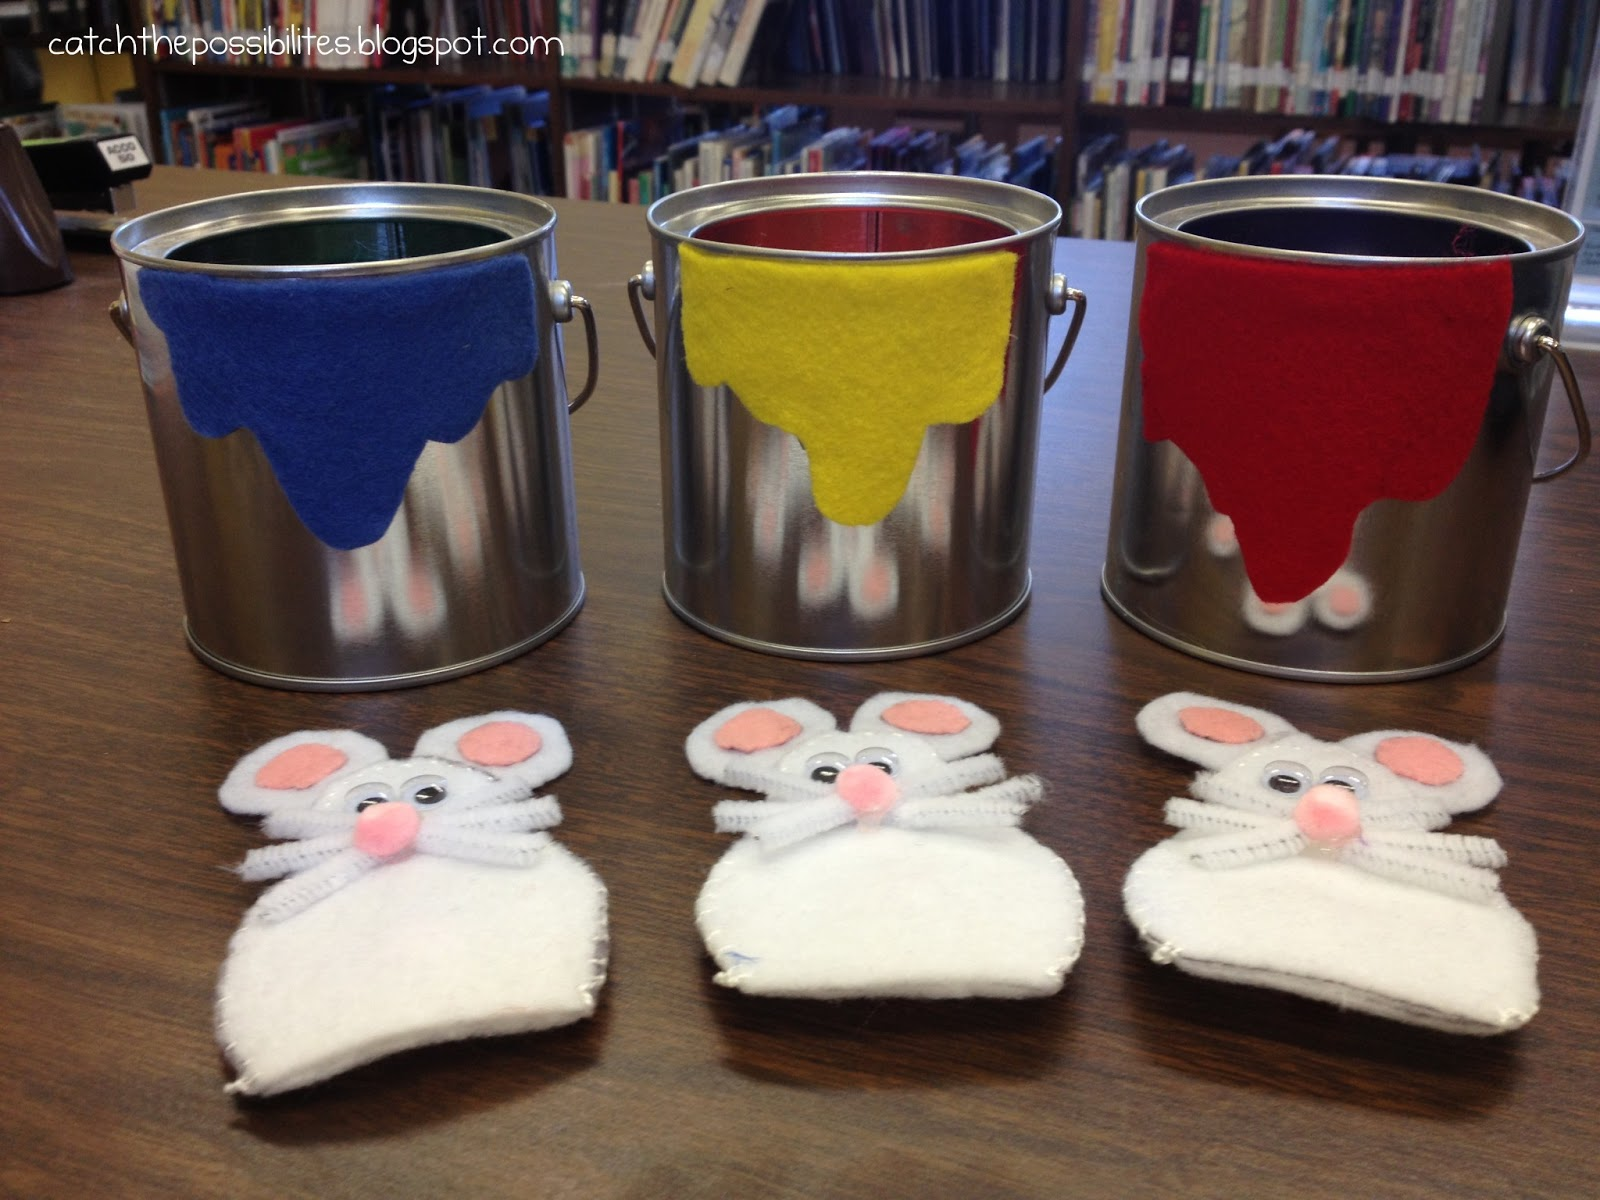 Flannel Friday & Storytime Swap: Mouse Paint - Catch the Possibilities